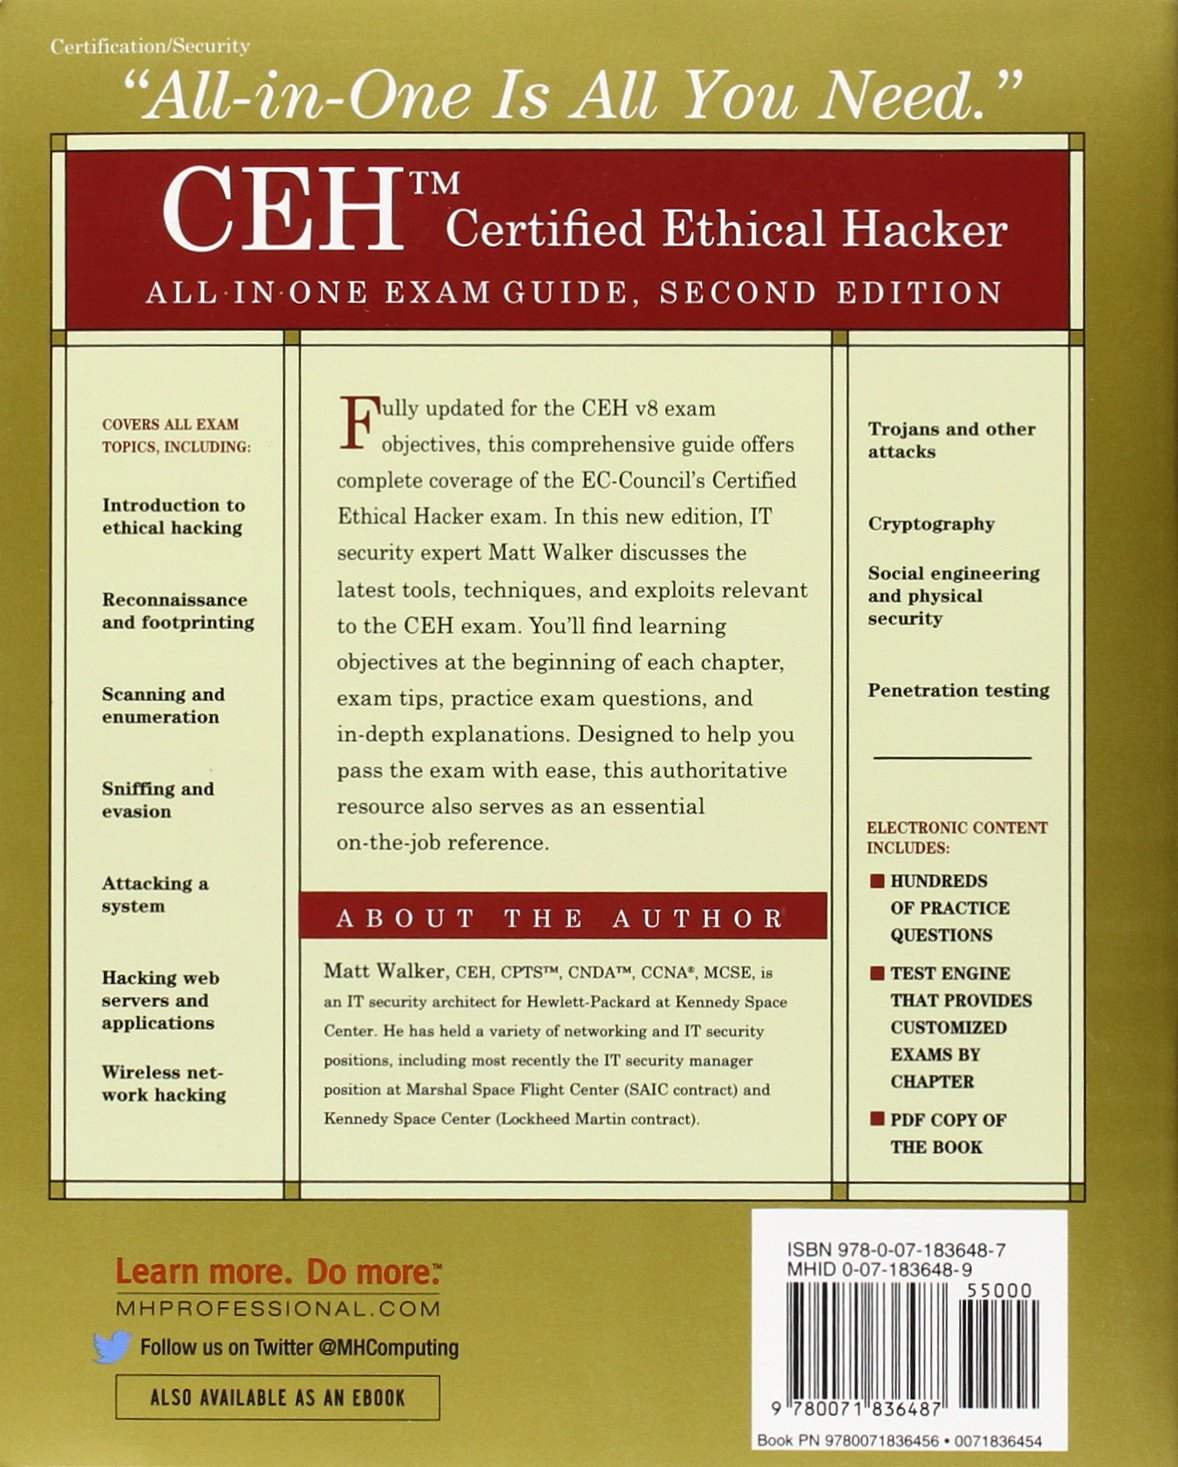 Buy ceh certified ethical hacker all in one exam guide second buy ceh certified ethical hacker all in one exam guide second edition book online at low prices in india ceh certified ethical hacker all in one exam xflitez Image collections